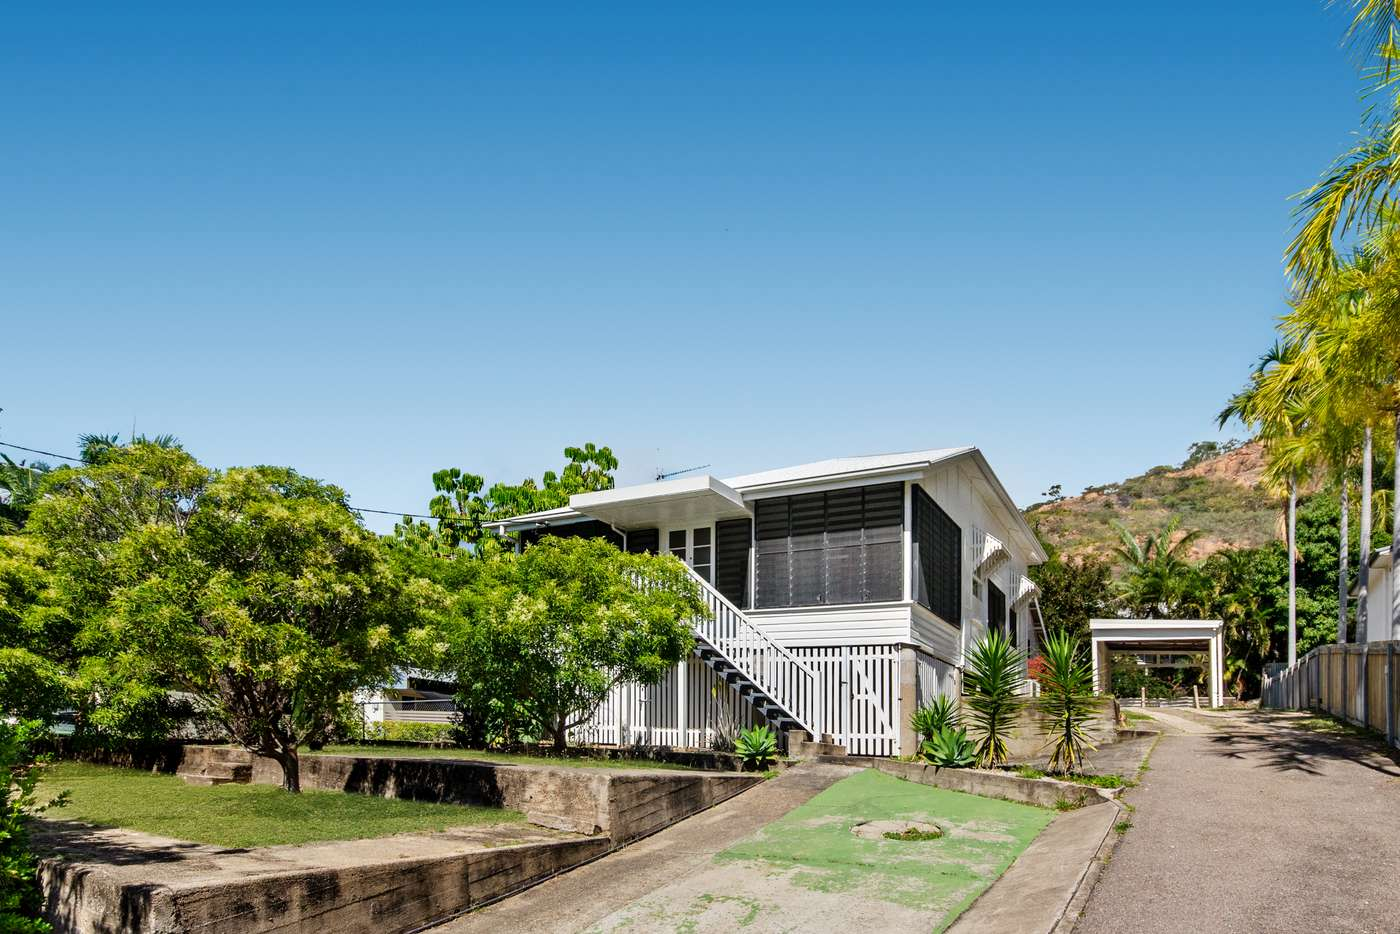 Main view of Homely house listing, 302 Stanley Street, North Ward QLD 4810